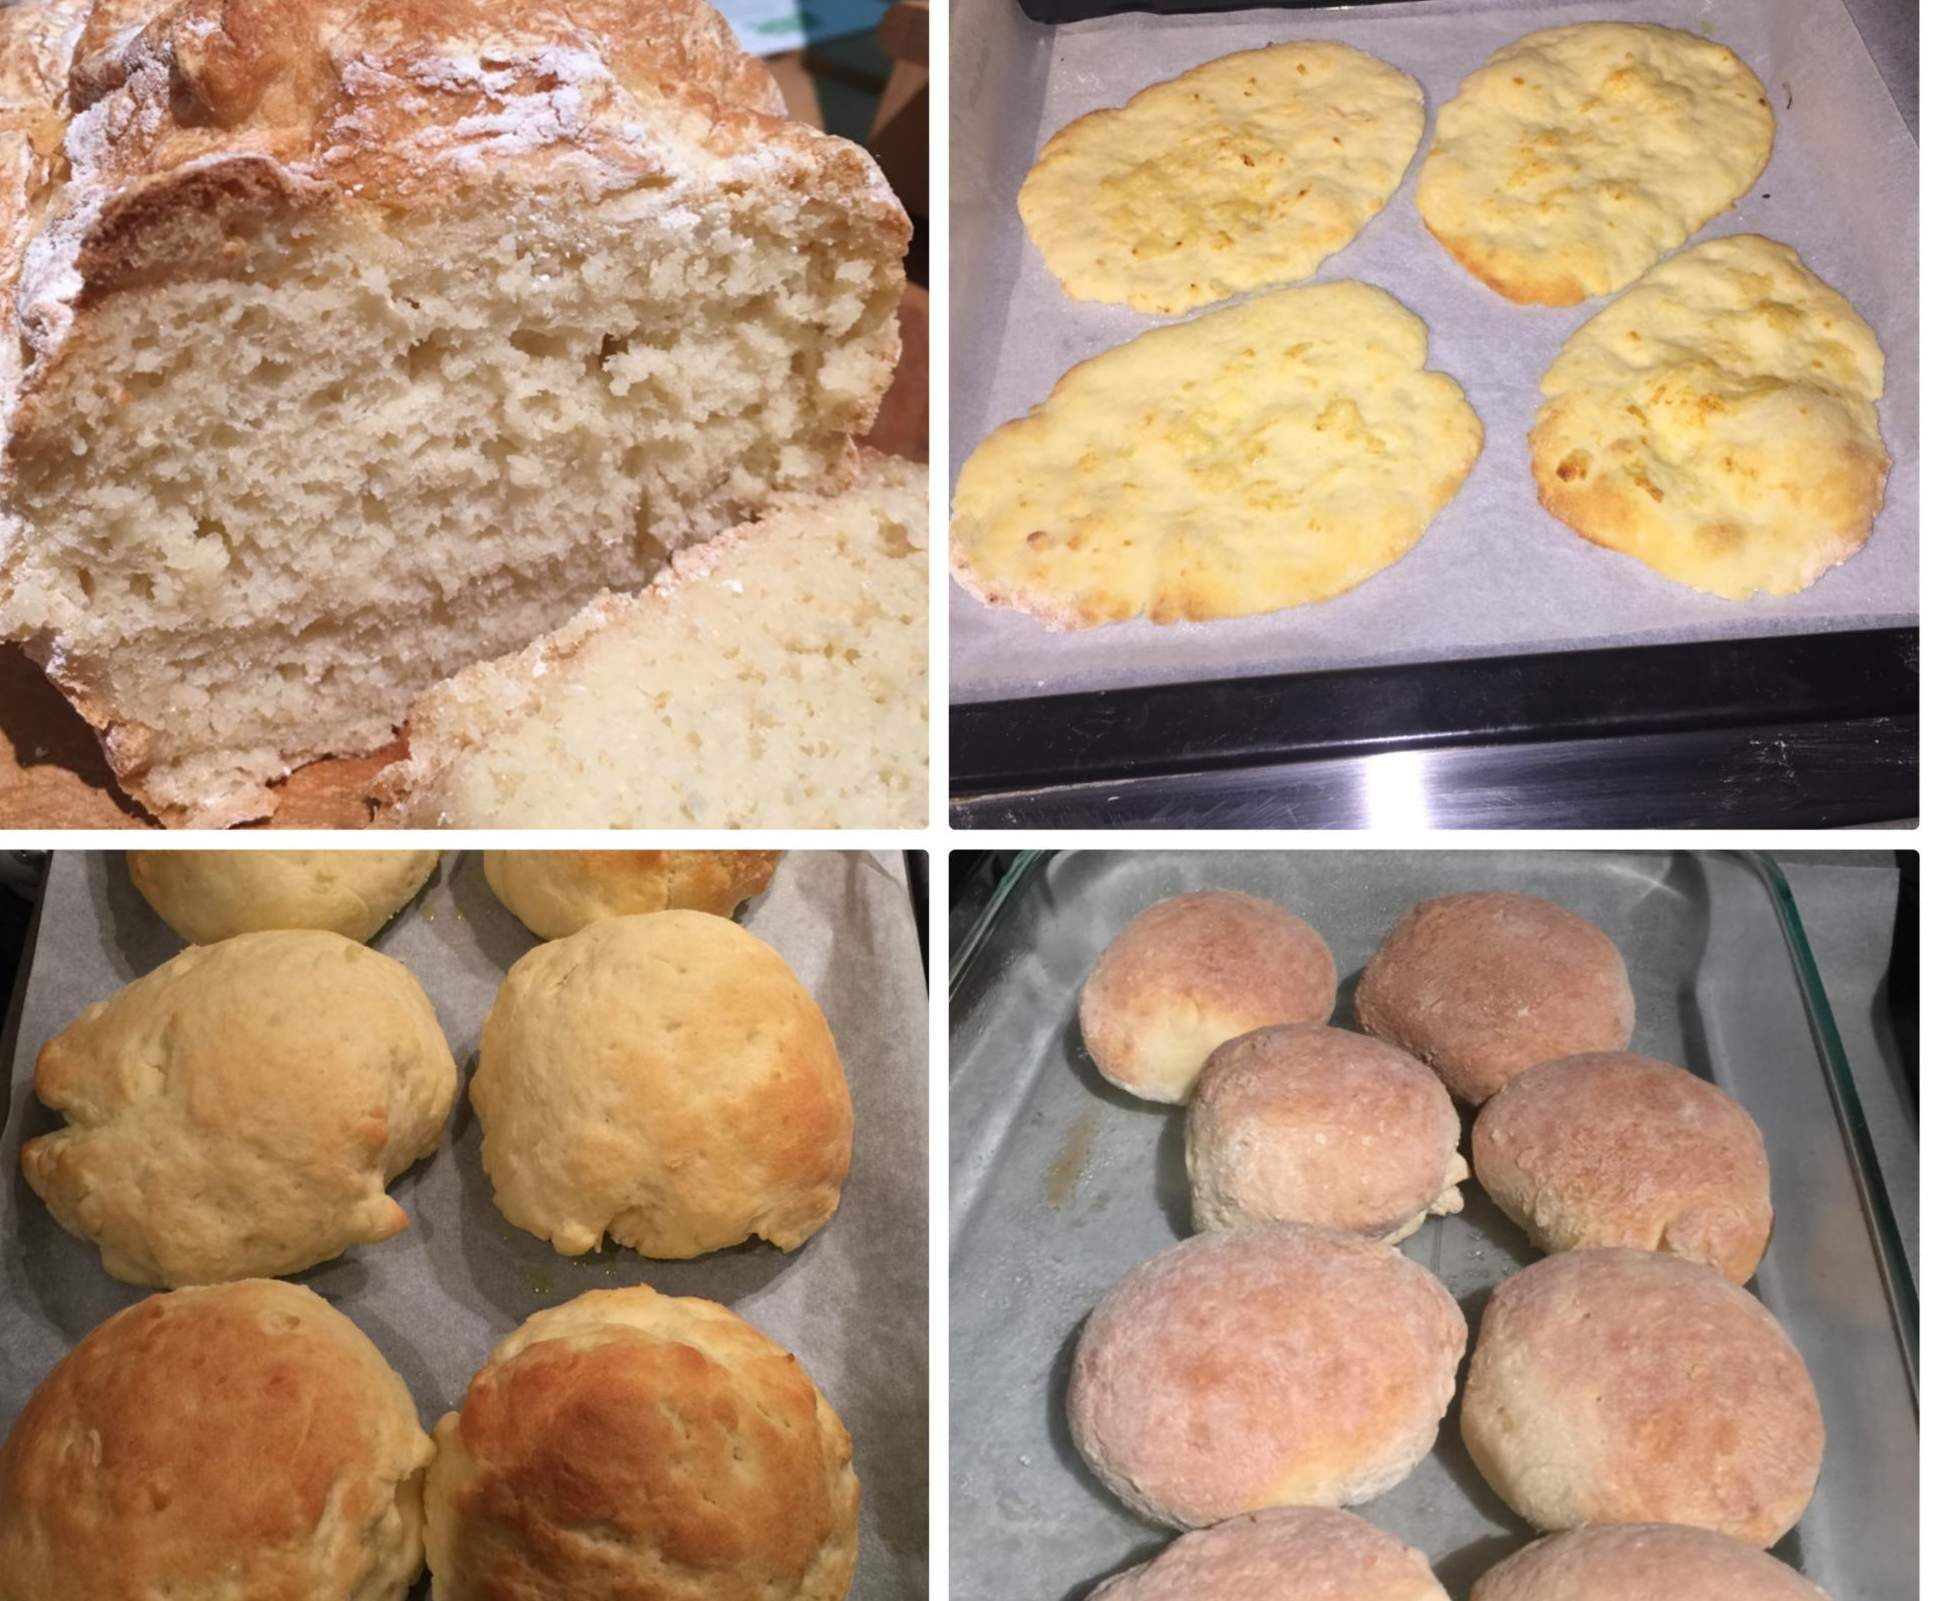 One Basic Gluten Free Bread Dough 3 Ways Instructions For Making Naan Bread Rolls Or A Small Loaf Of Bread Recipe Gluten Free Bread